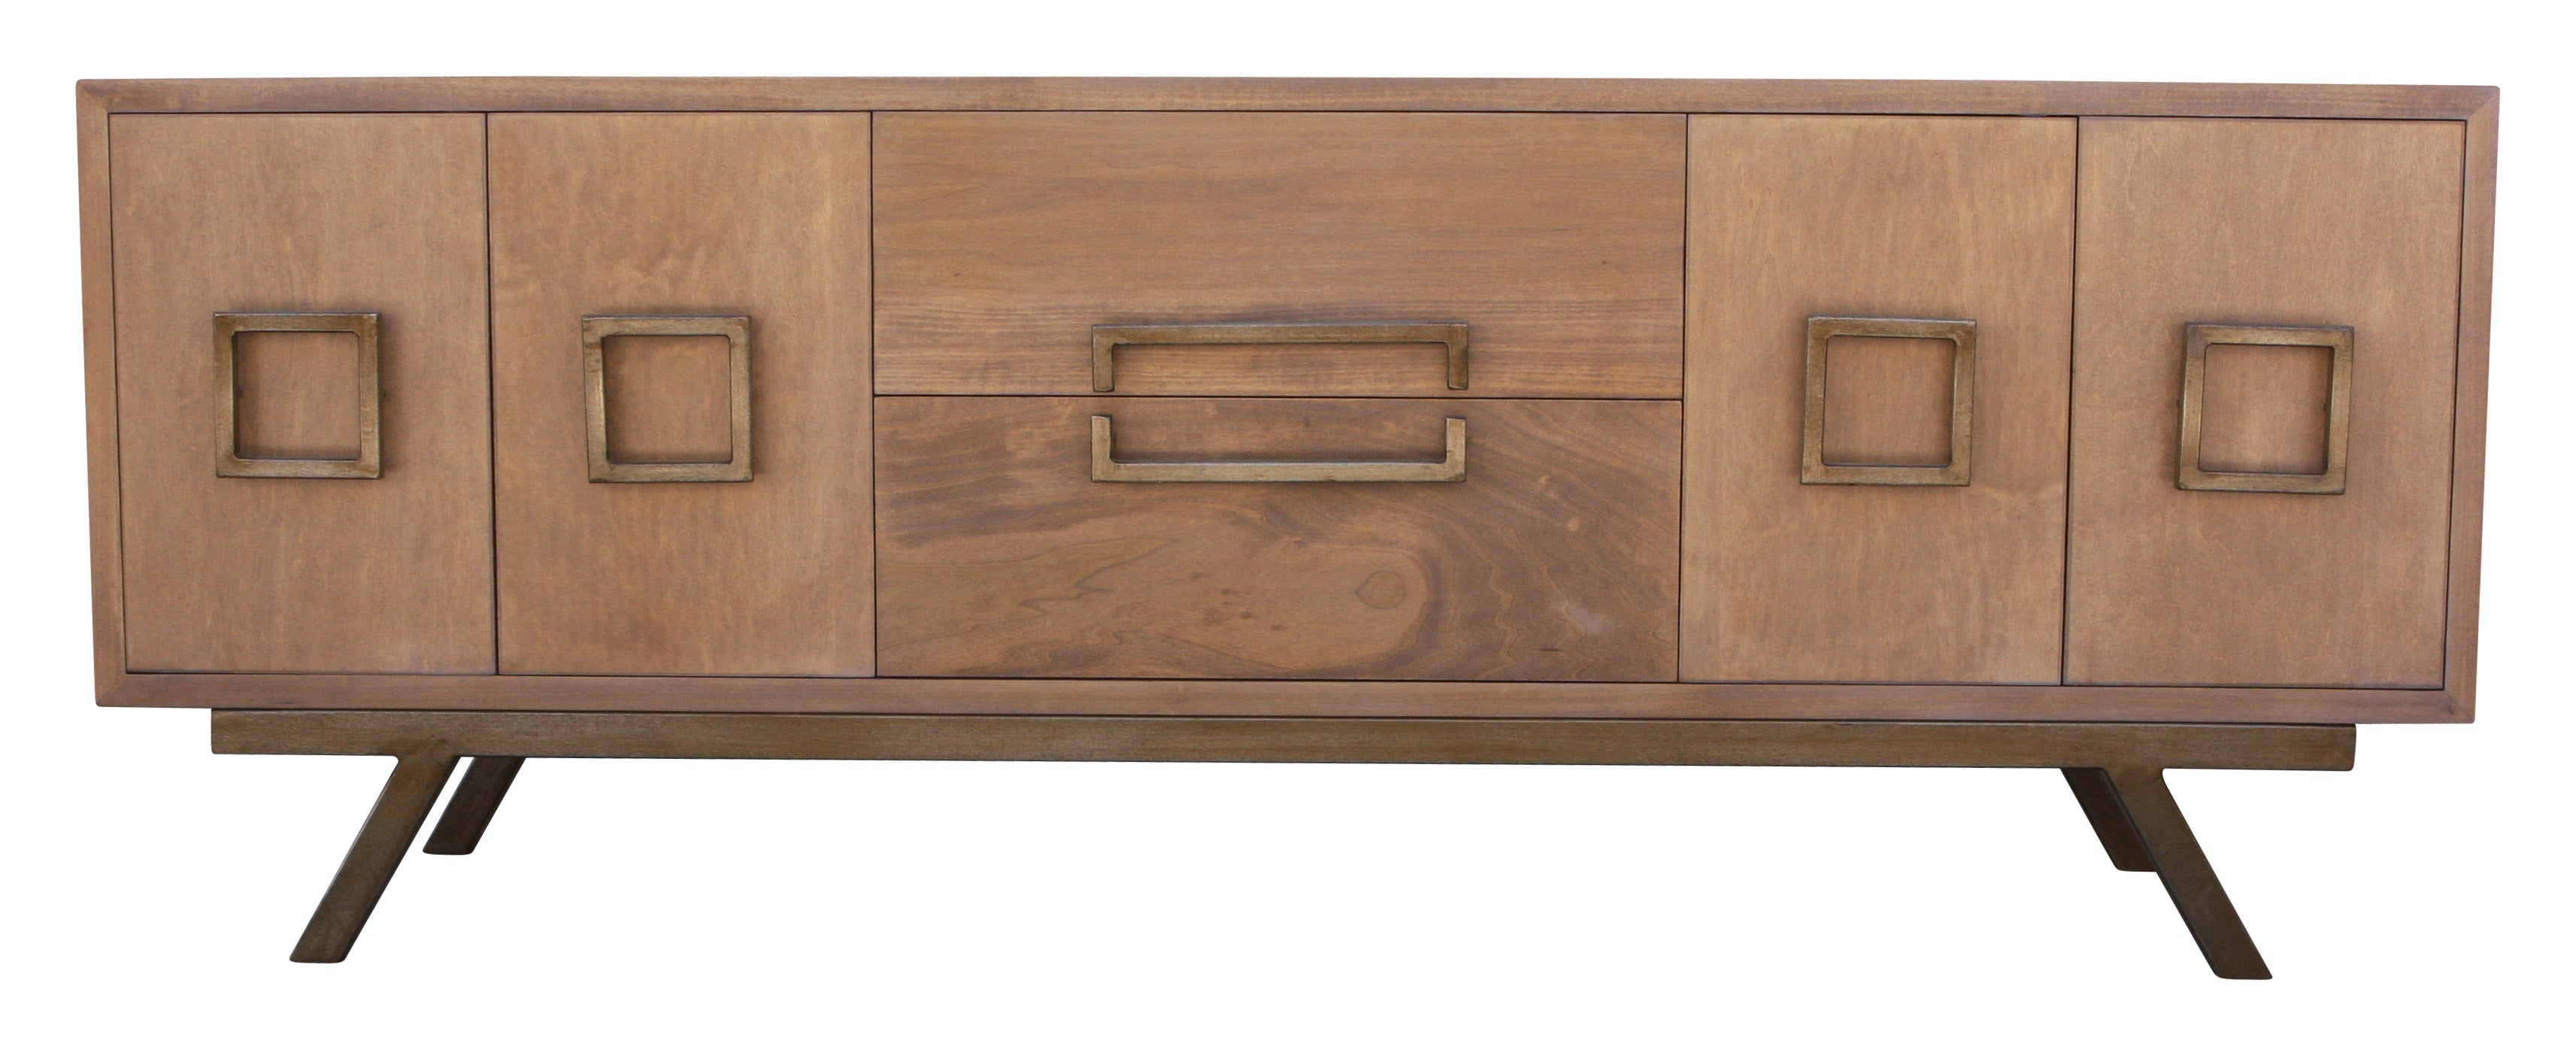 Picture of: Audra Mid Century Modern Credenza Mortise Tenon